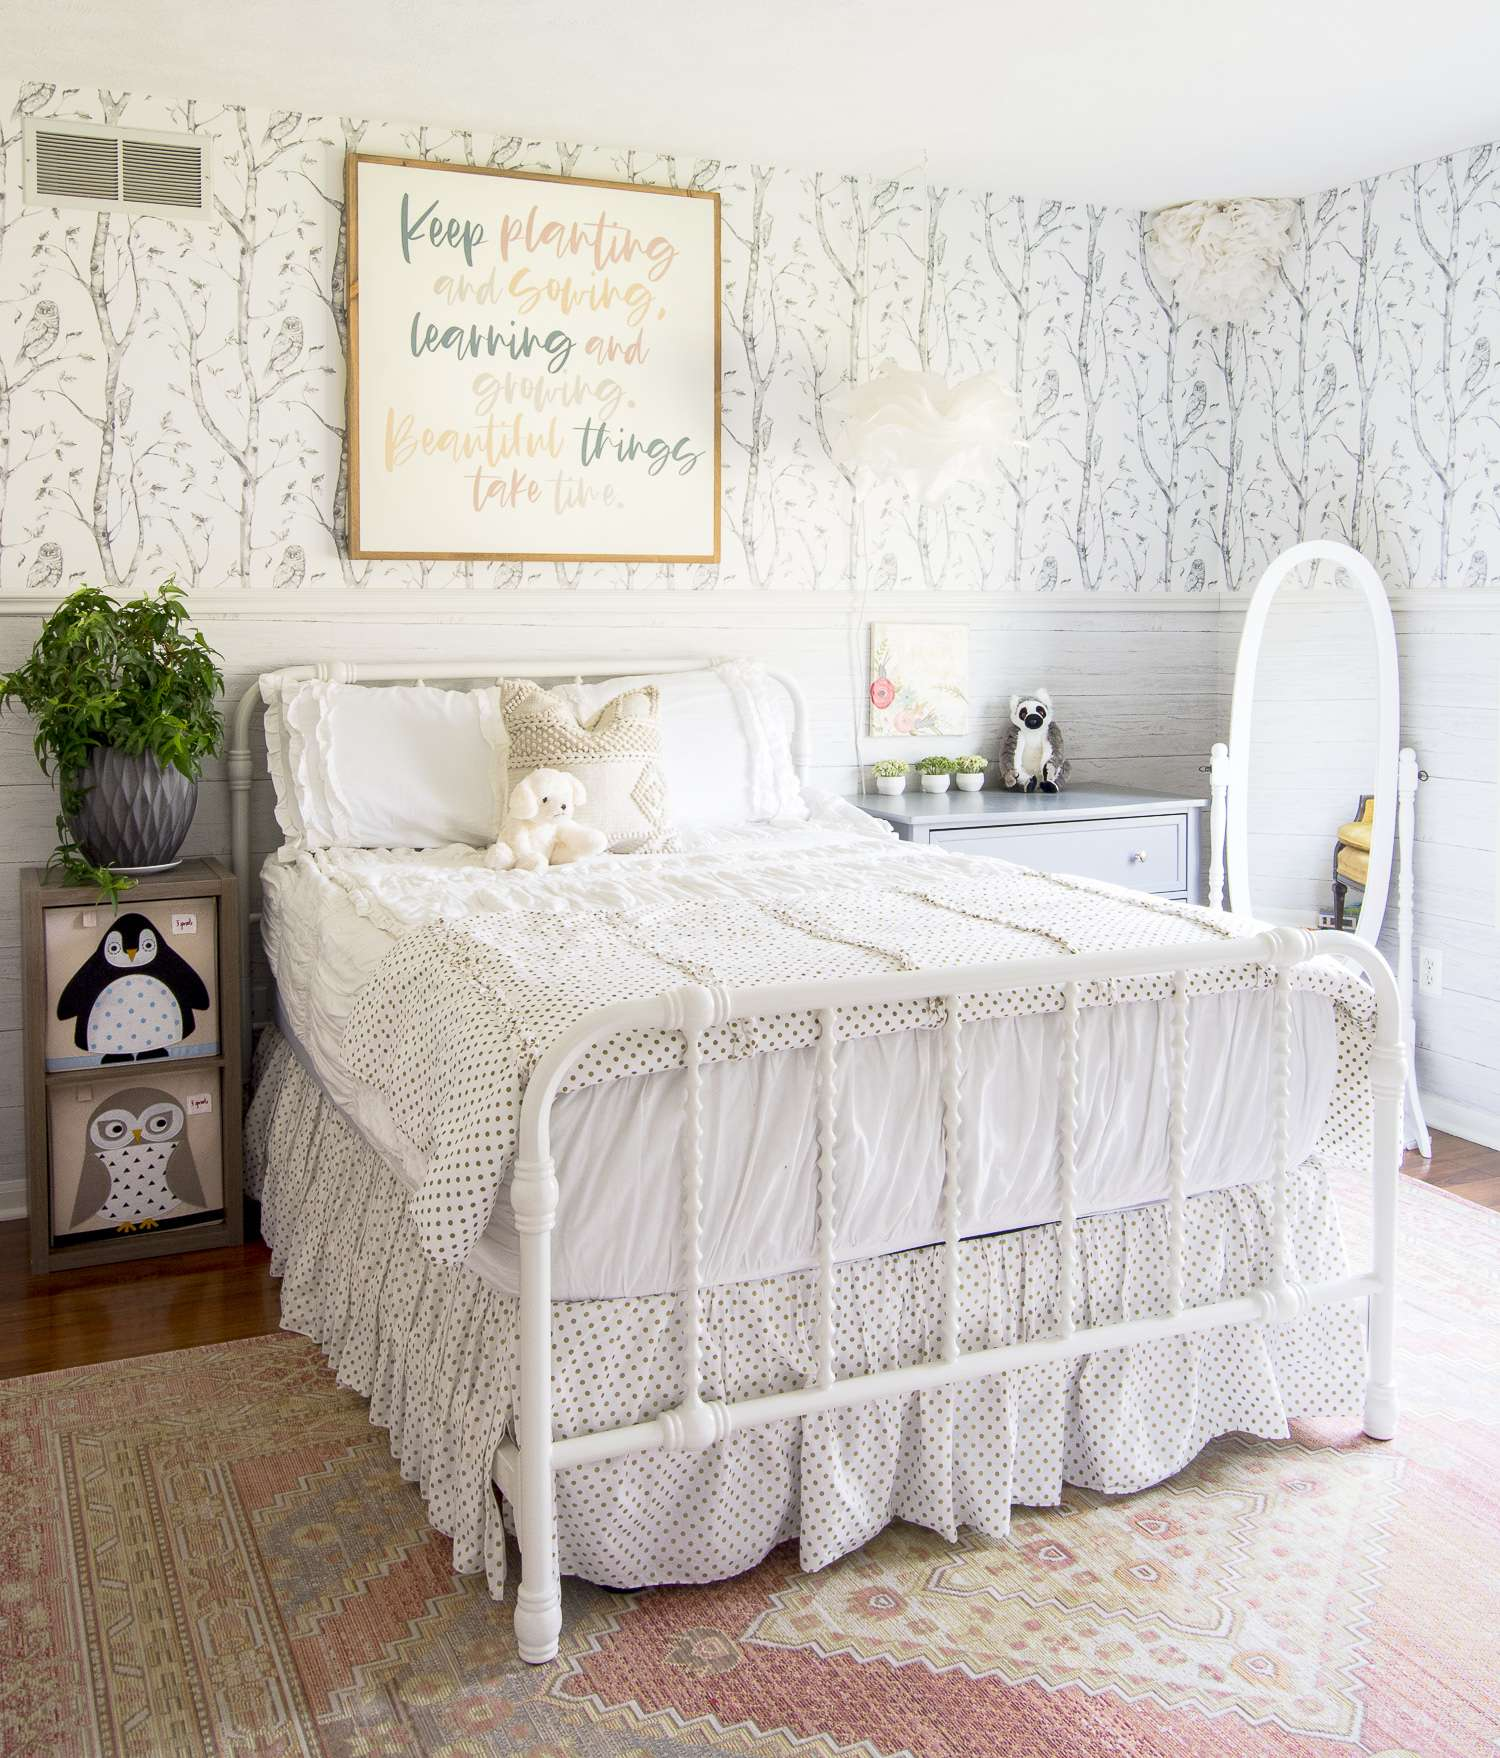 Little girl's bedroom decor.